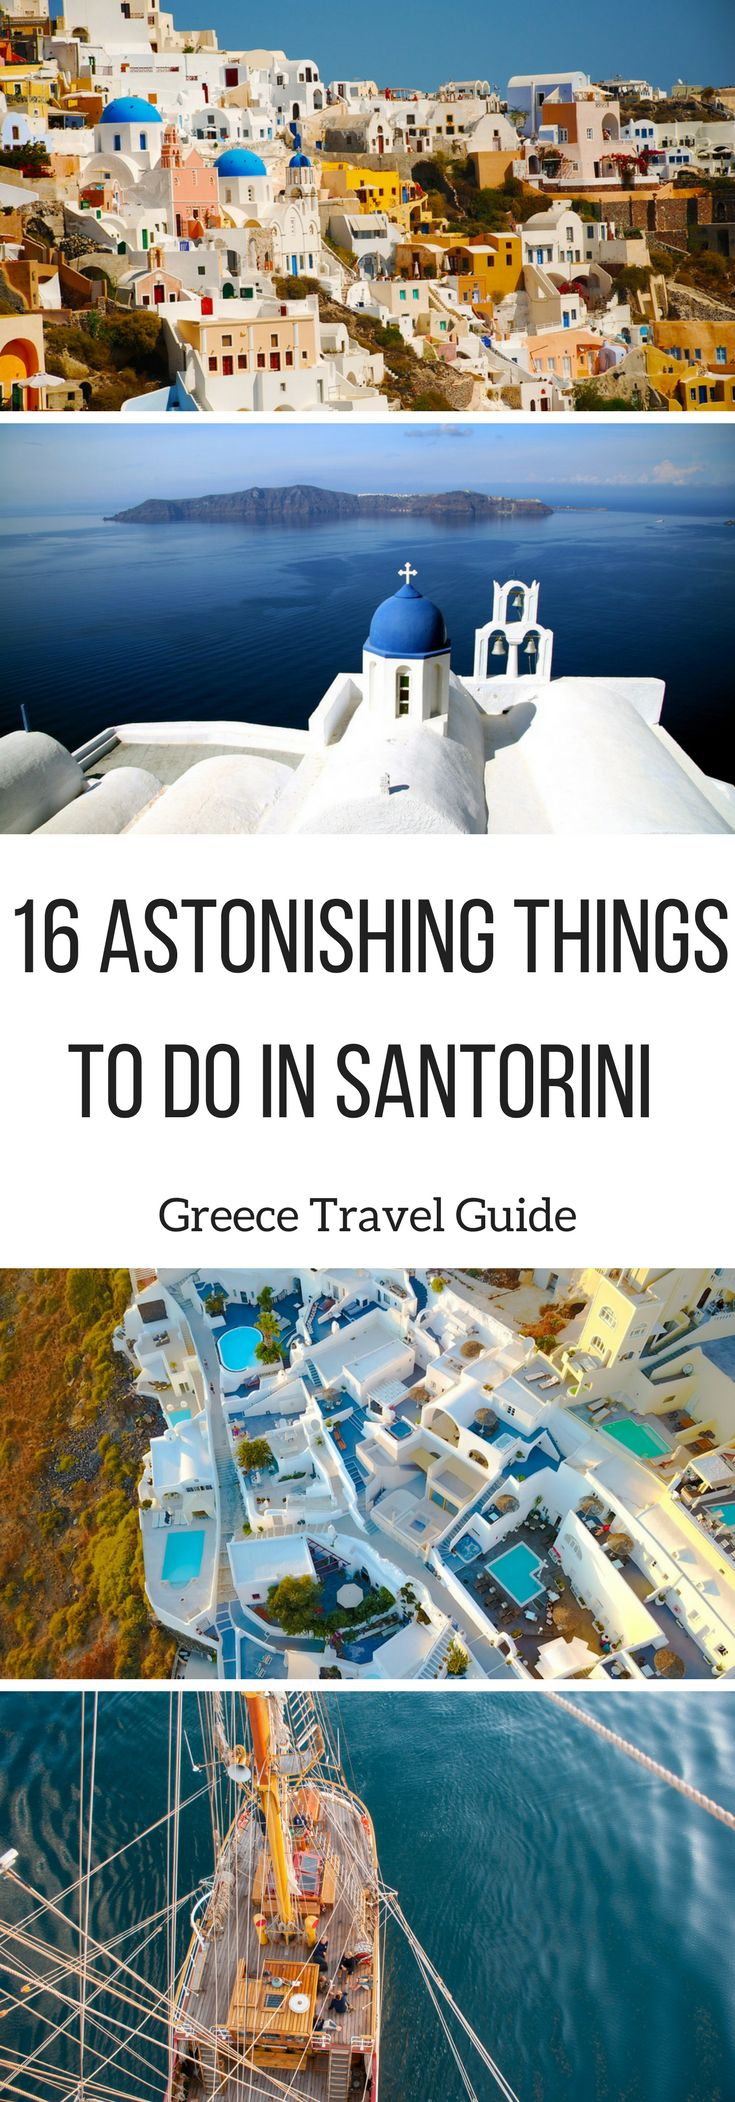 16 Astonishing Things to do in #Santorini - #Greece Travel Guide